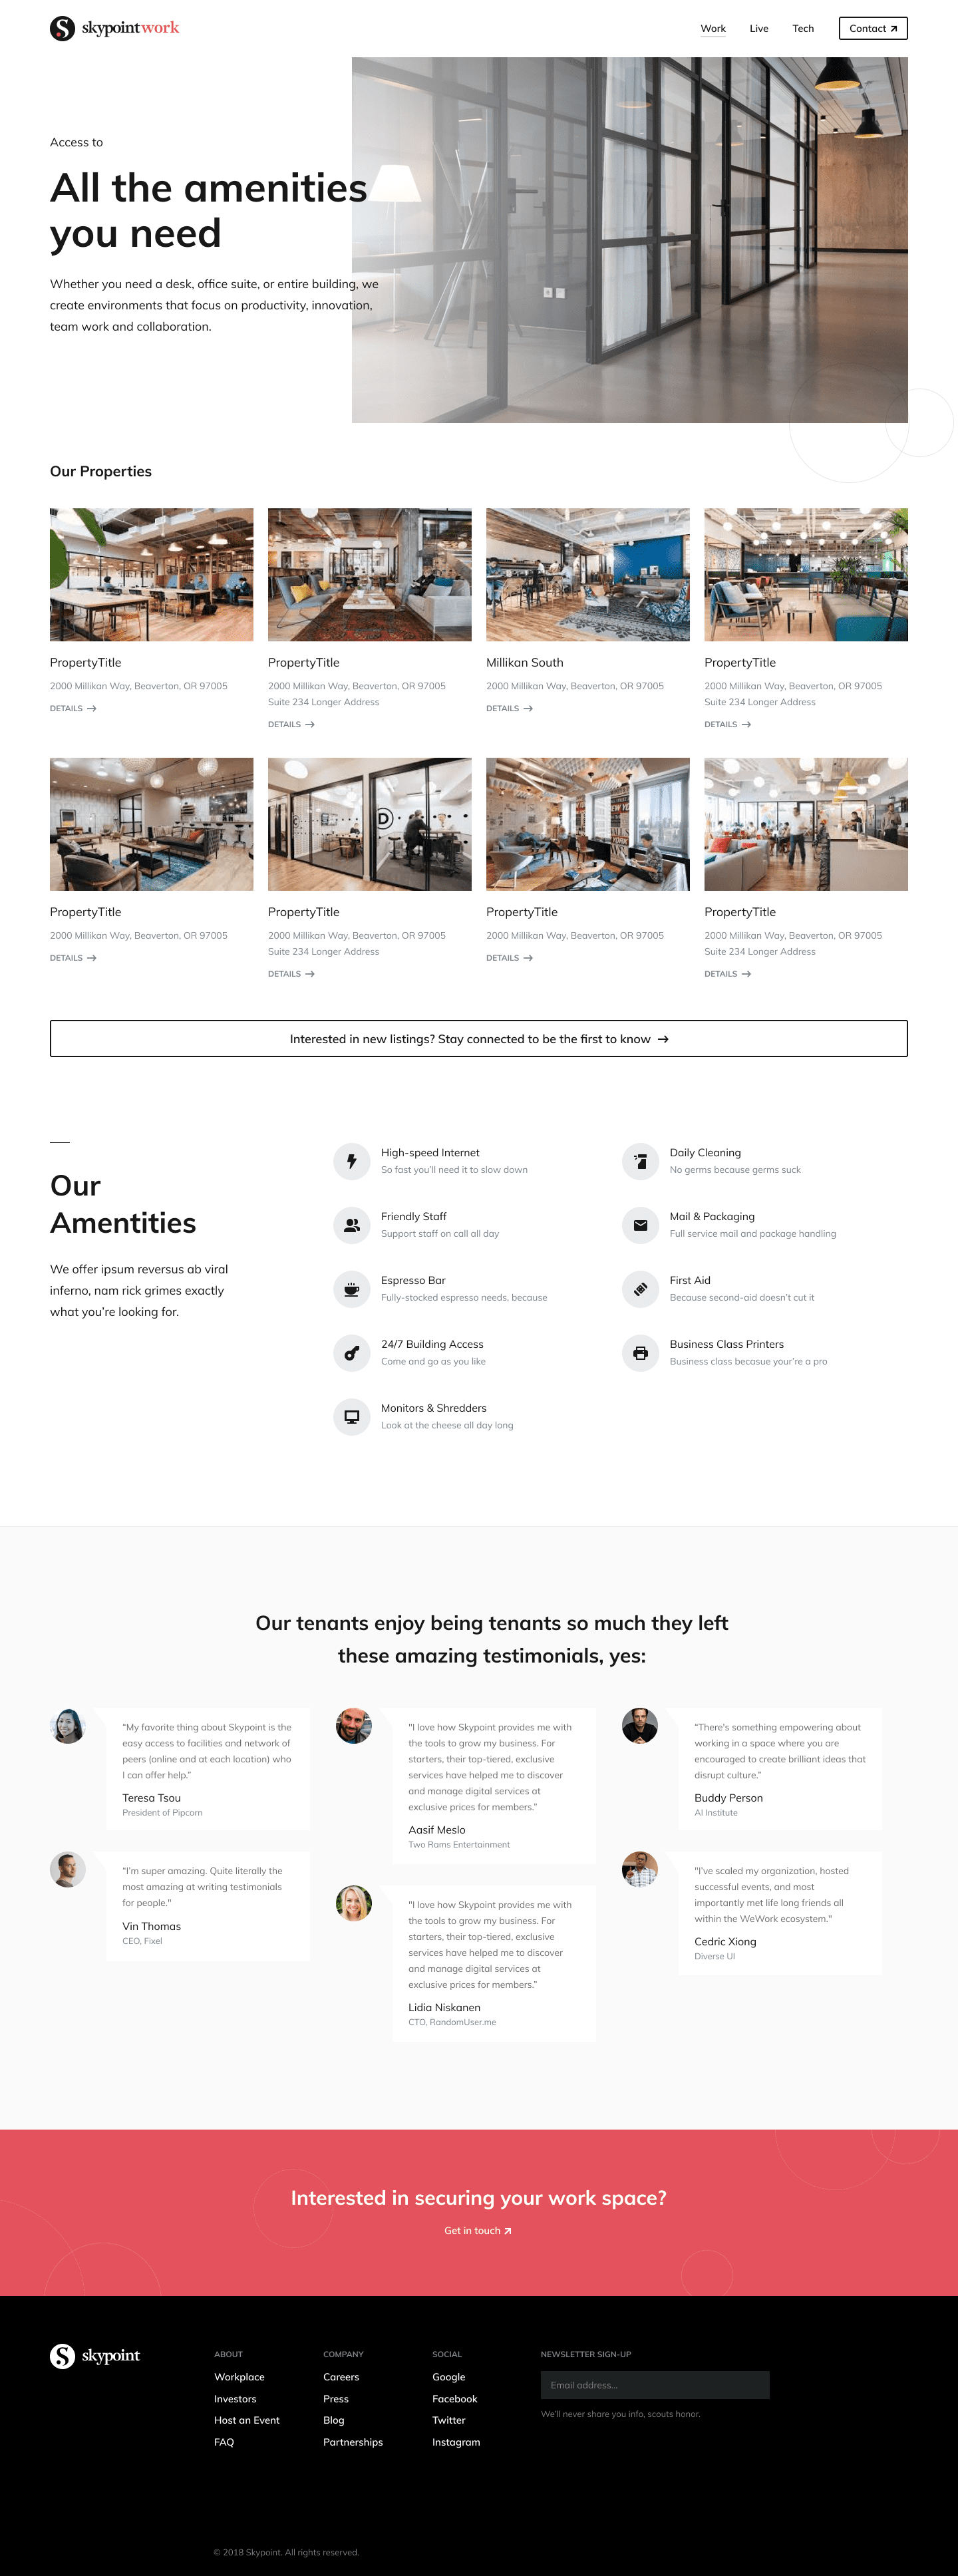 Skypoint Branding and Website